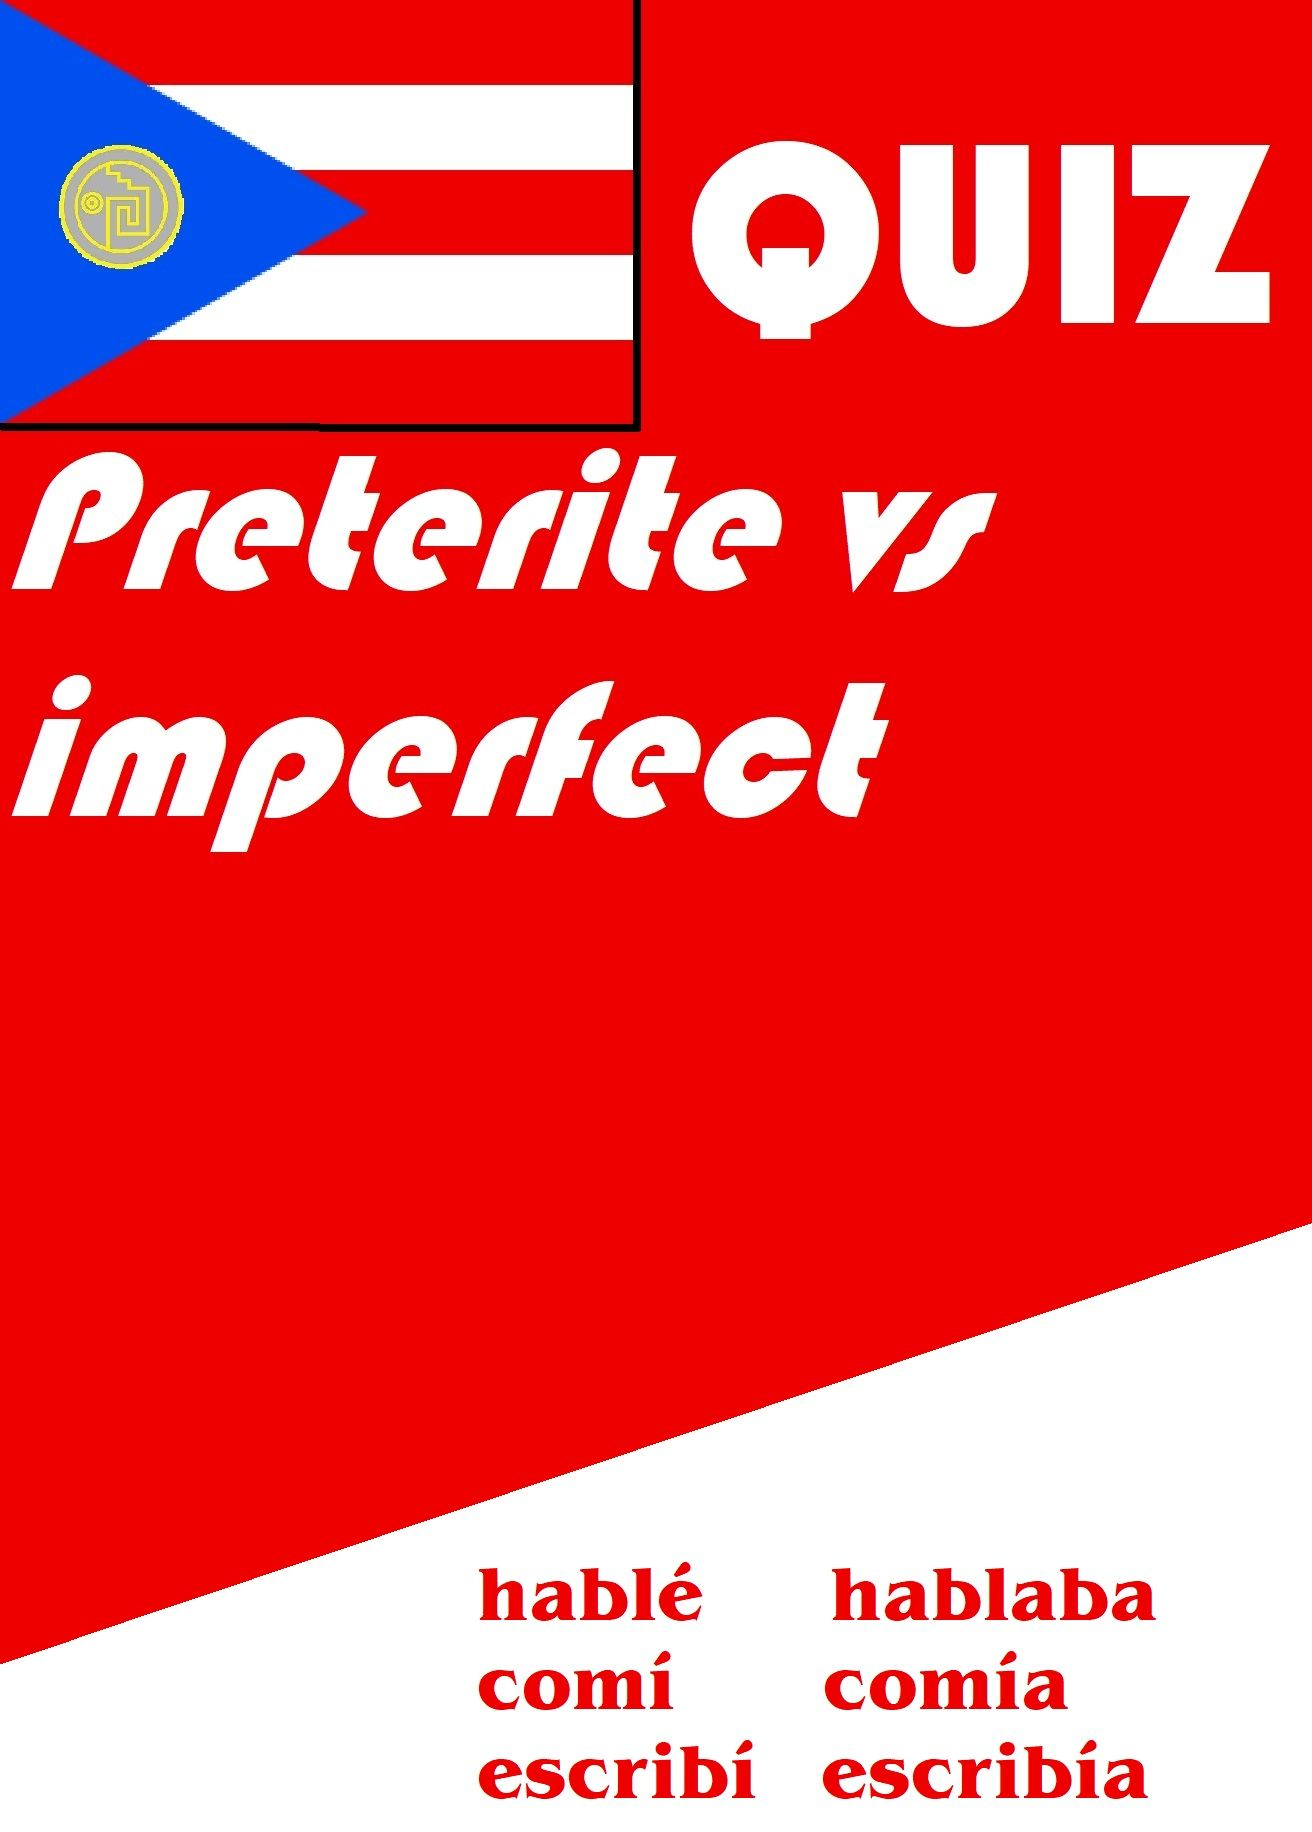 Spanish Preterite Vs Imperfect Quiz Distance Learning